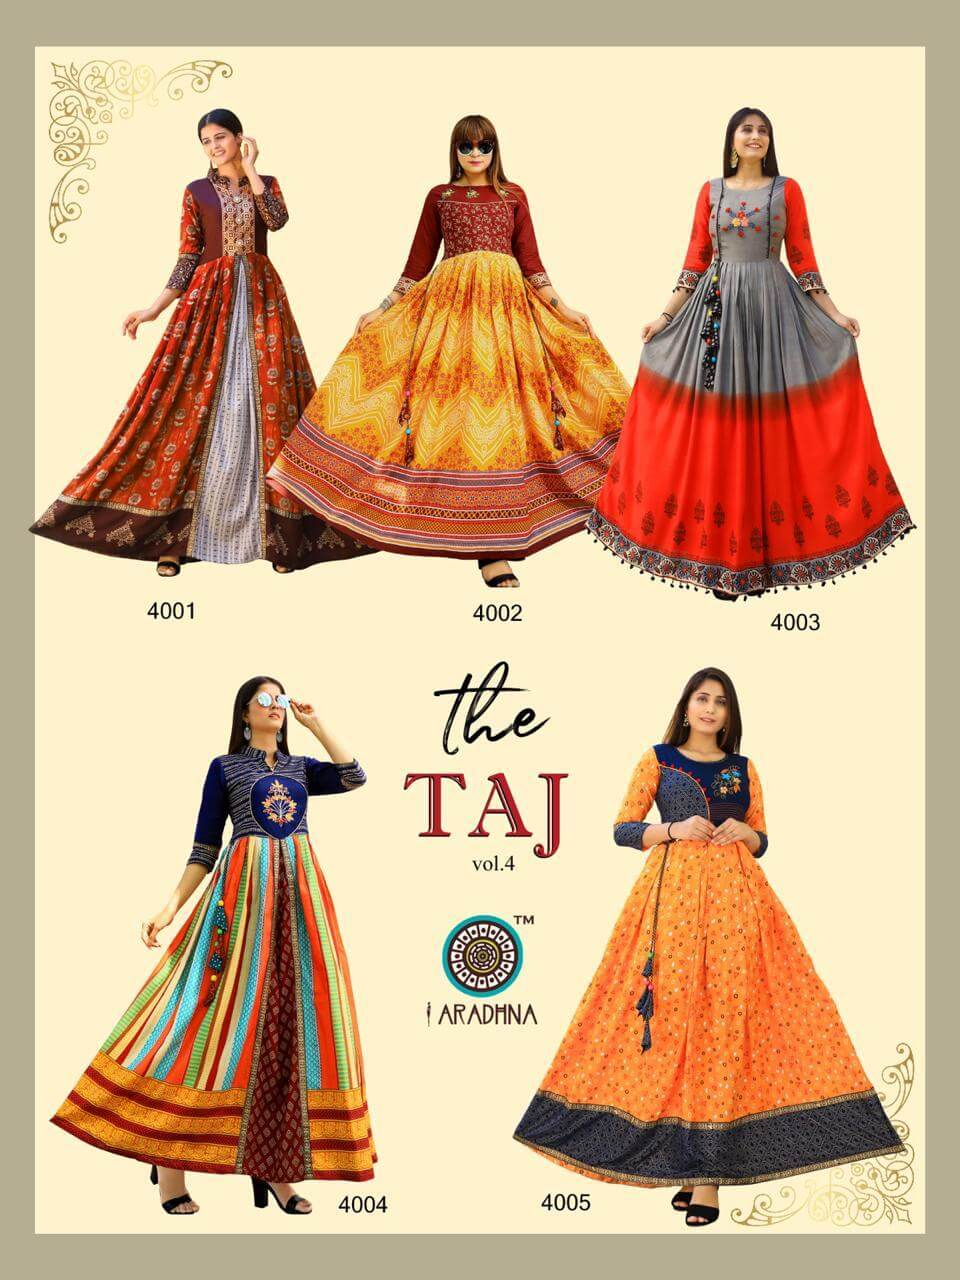 Aradhna Taj Vol 4 collection 11